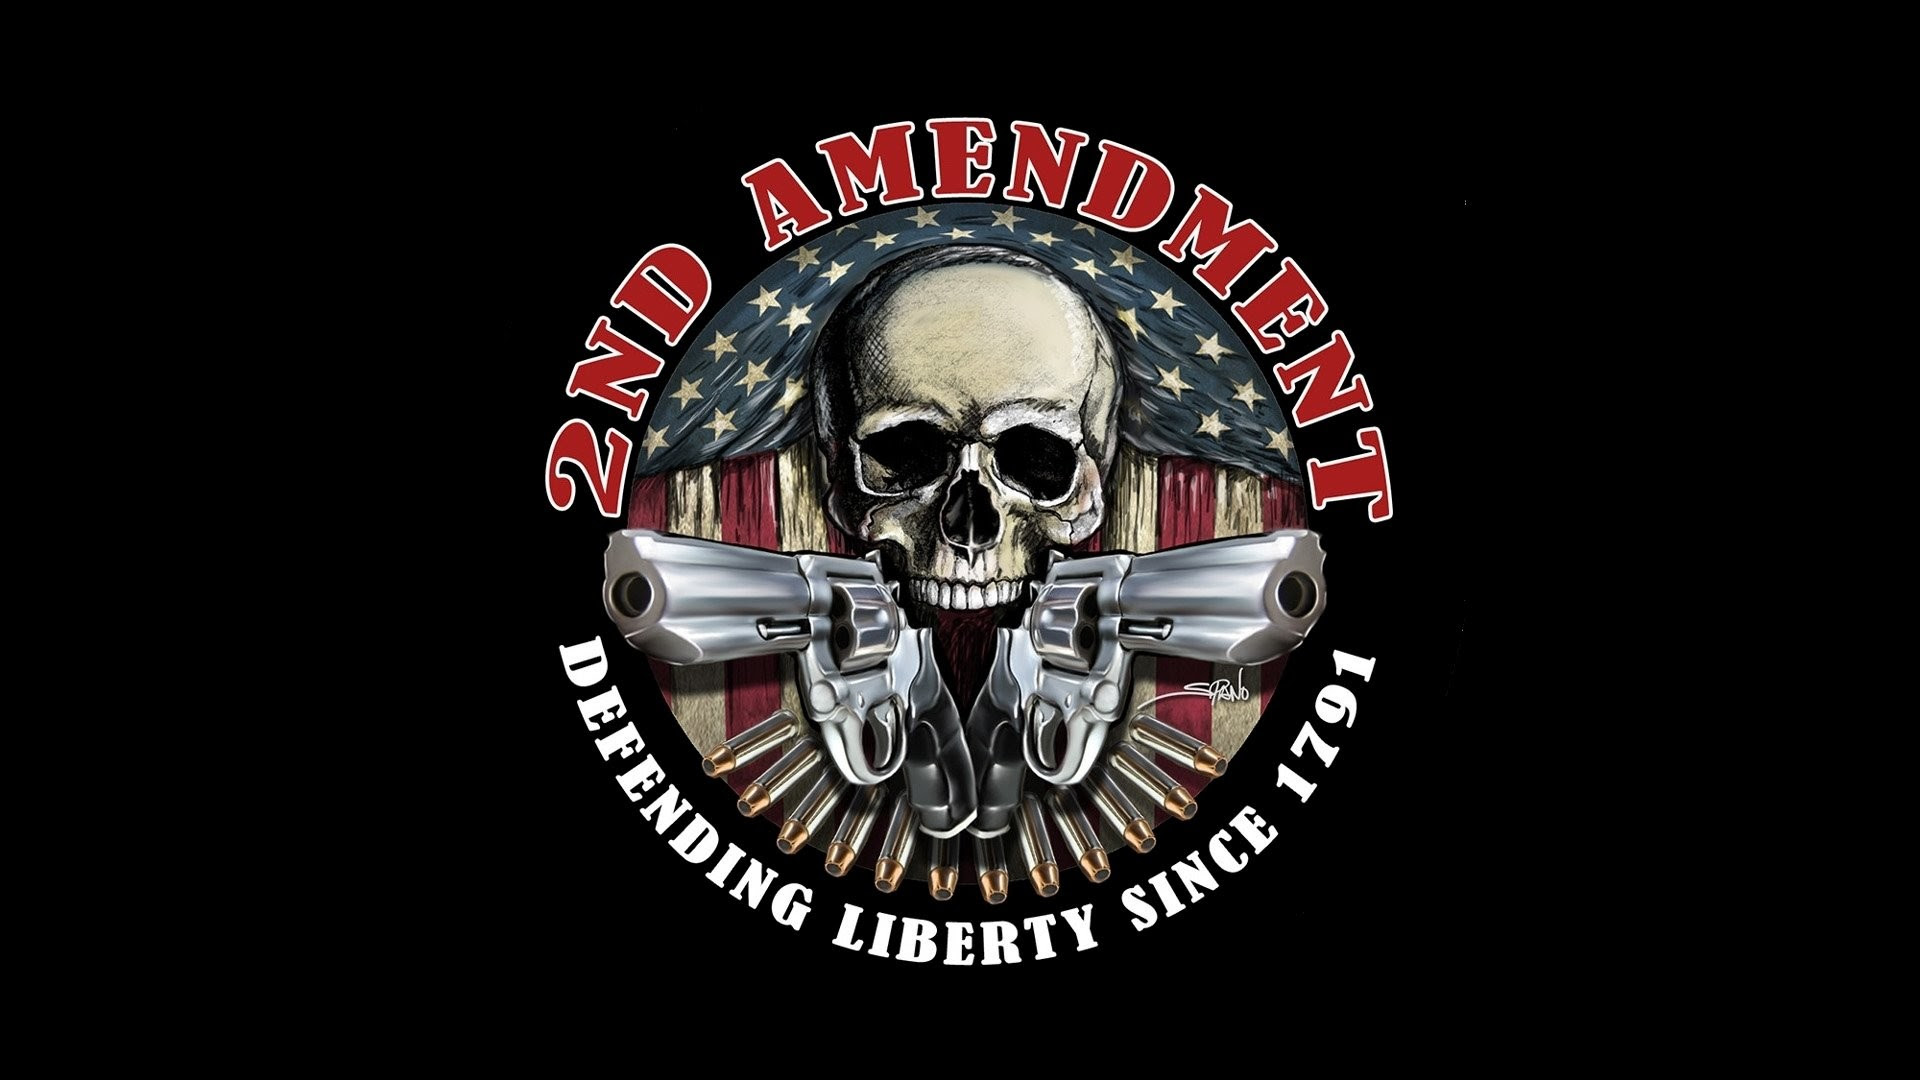 2nd Amendment Wallpaper 64 Images